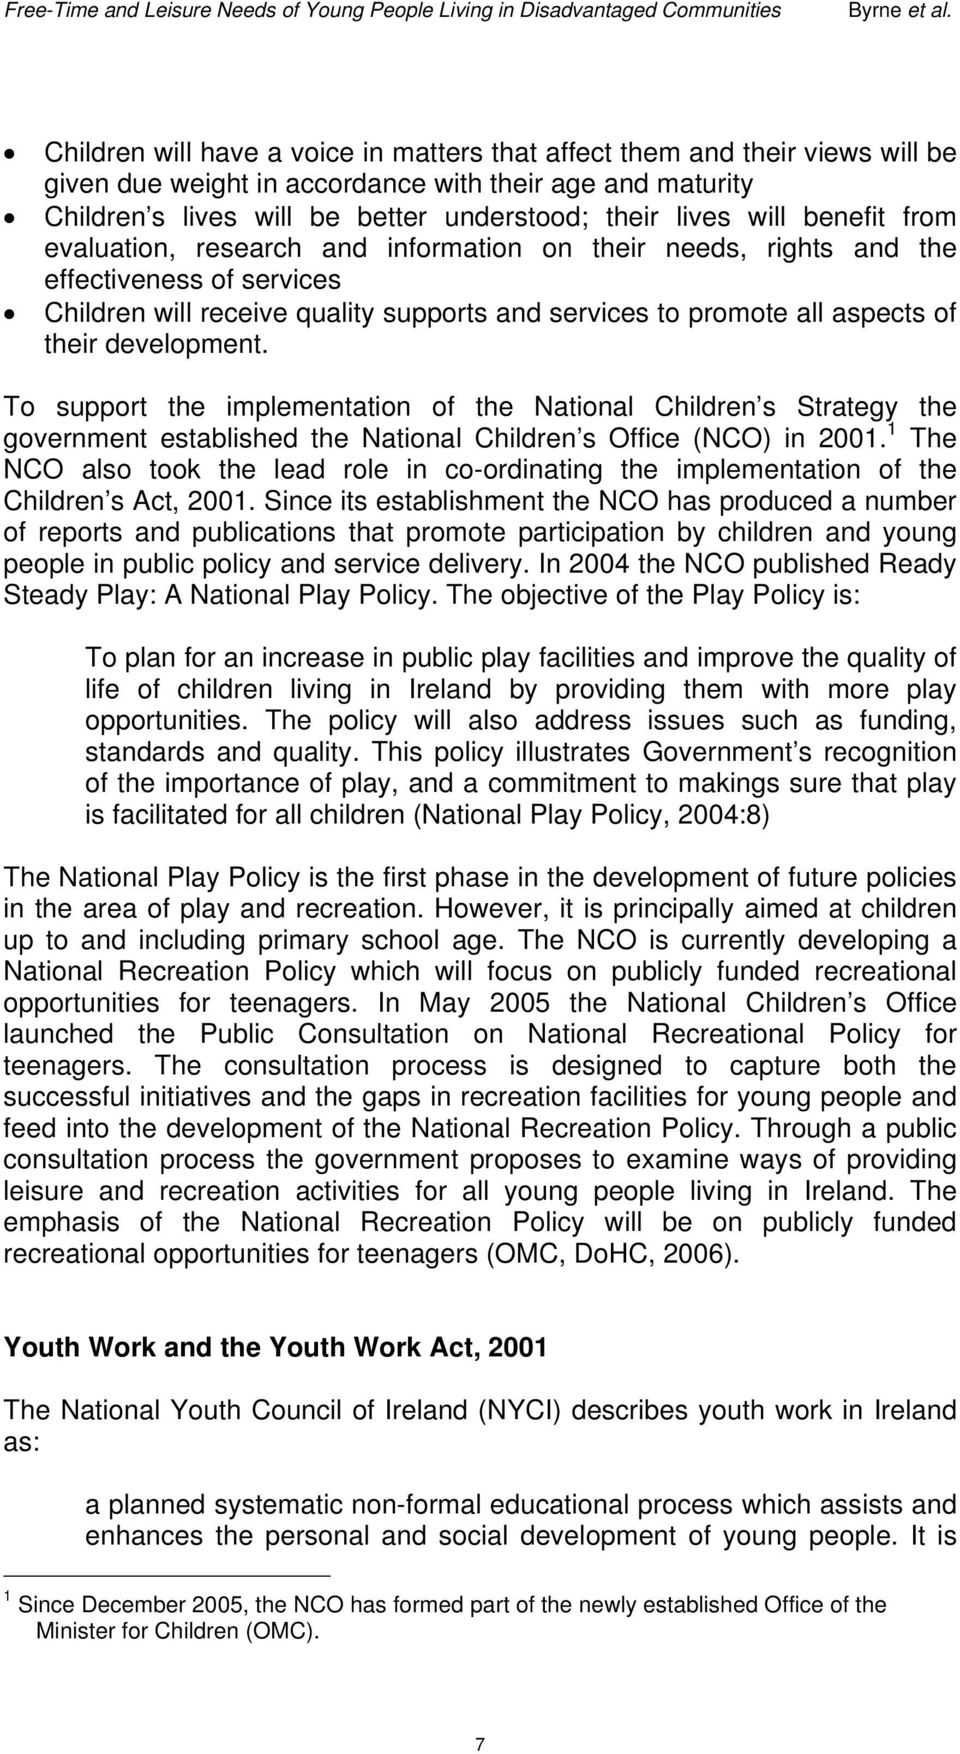 development. To support the implementation of the National Children s Strategy the government established the National Children s Office (NCO) in 2001.